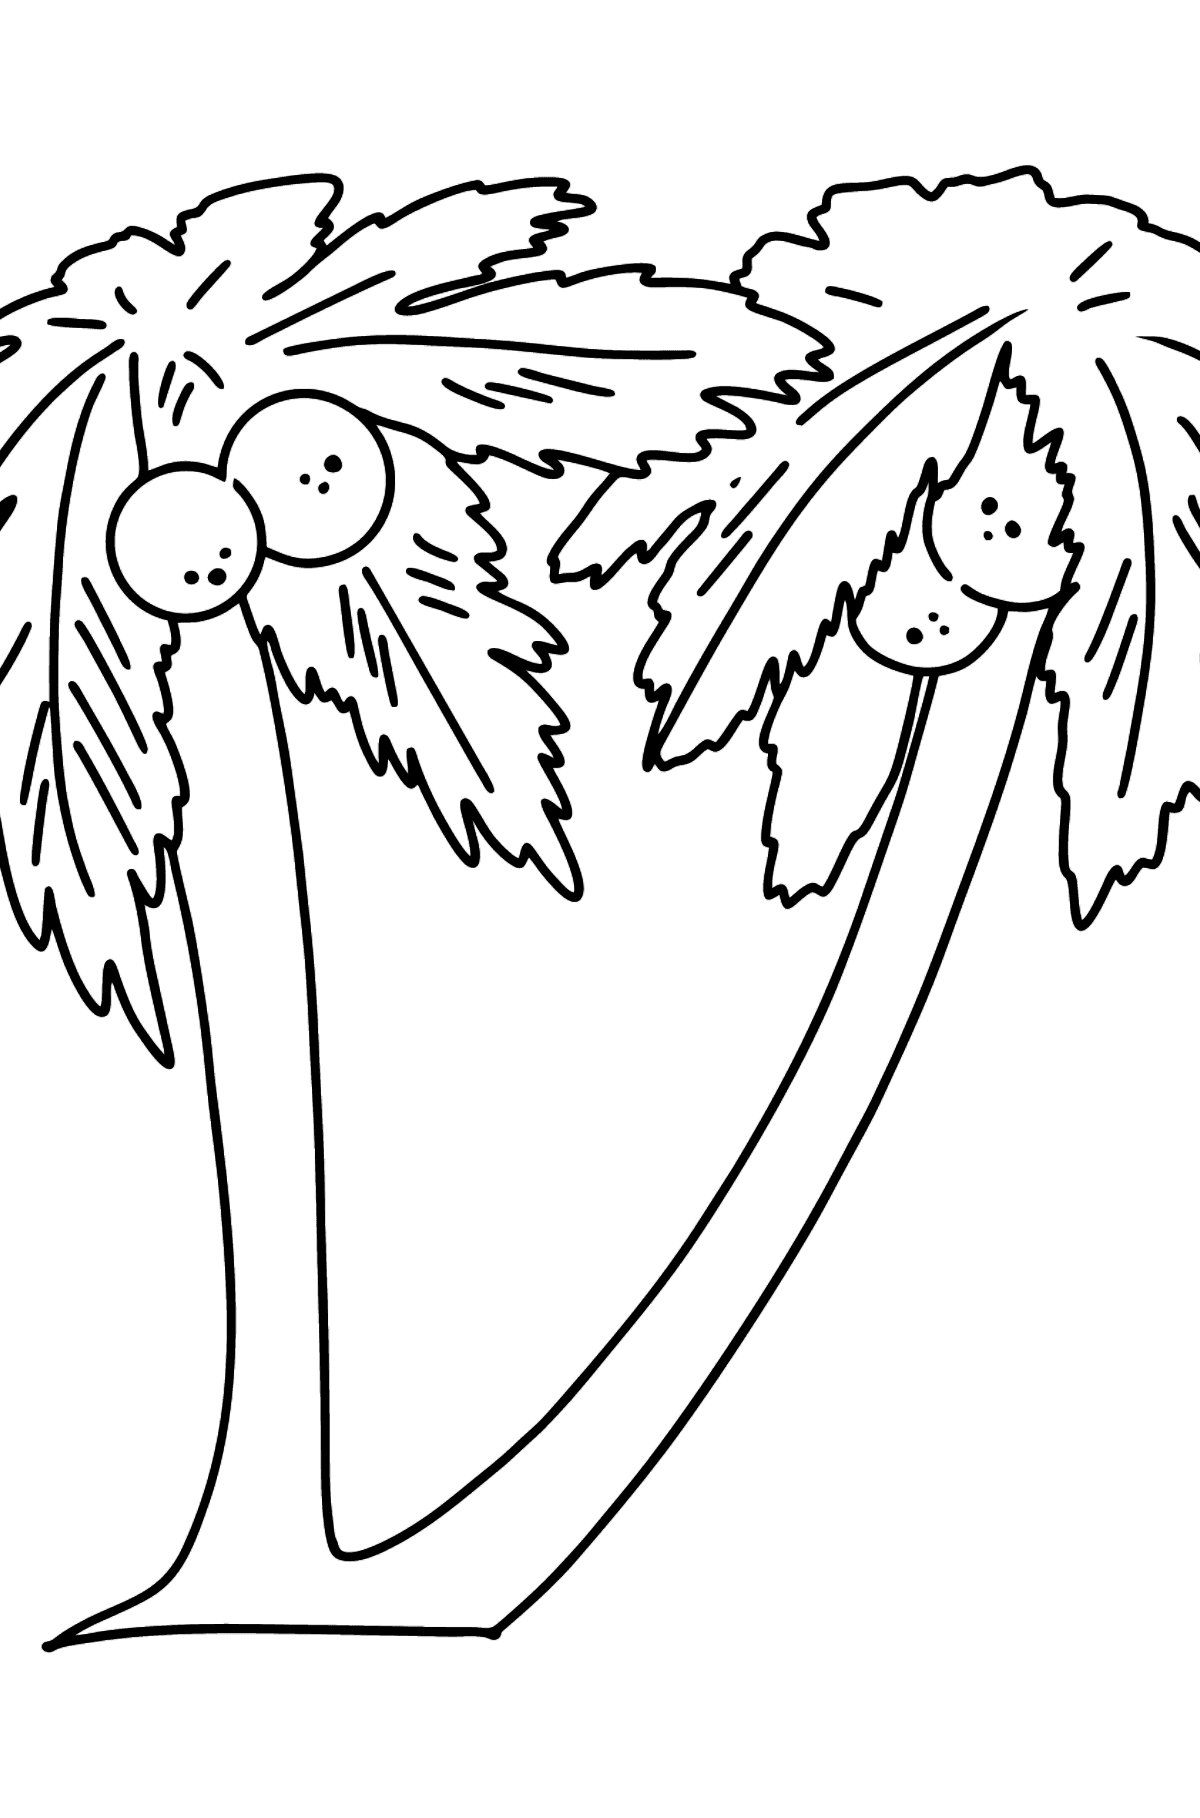 Coconut Palm coloring page - Coloring Pages for Kids